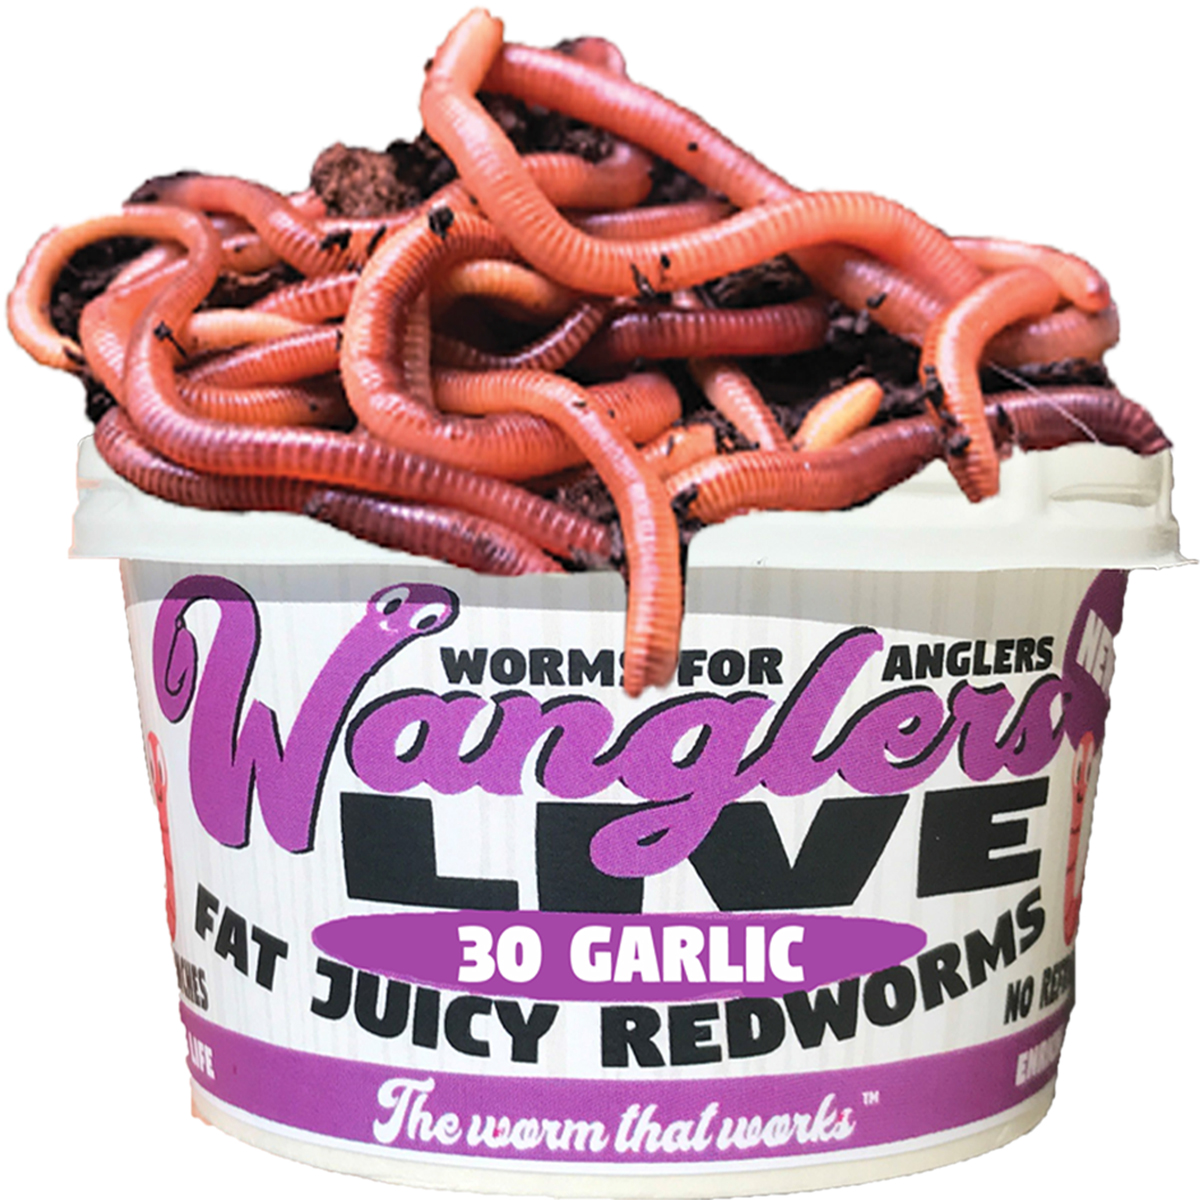 Wanglers Live Red Worm Garlic Scent